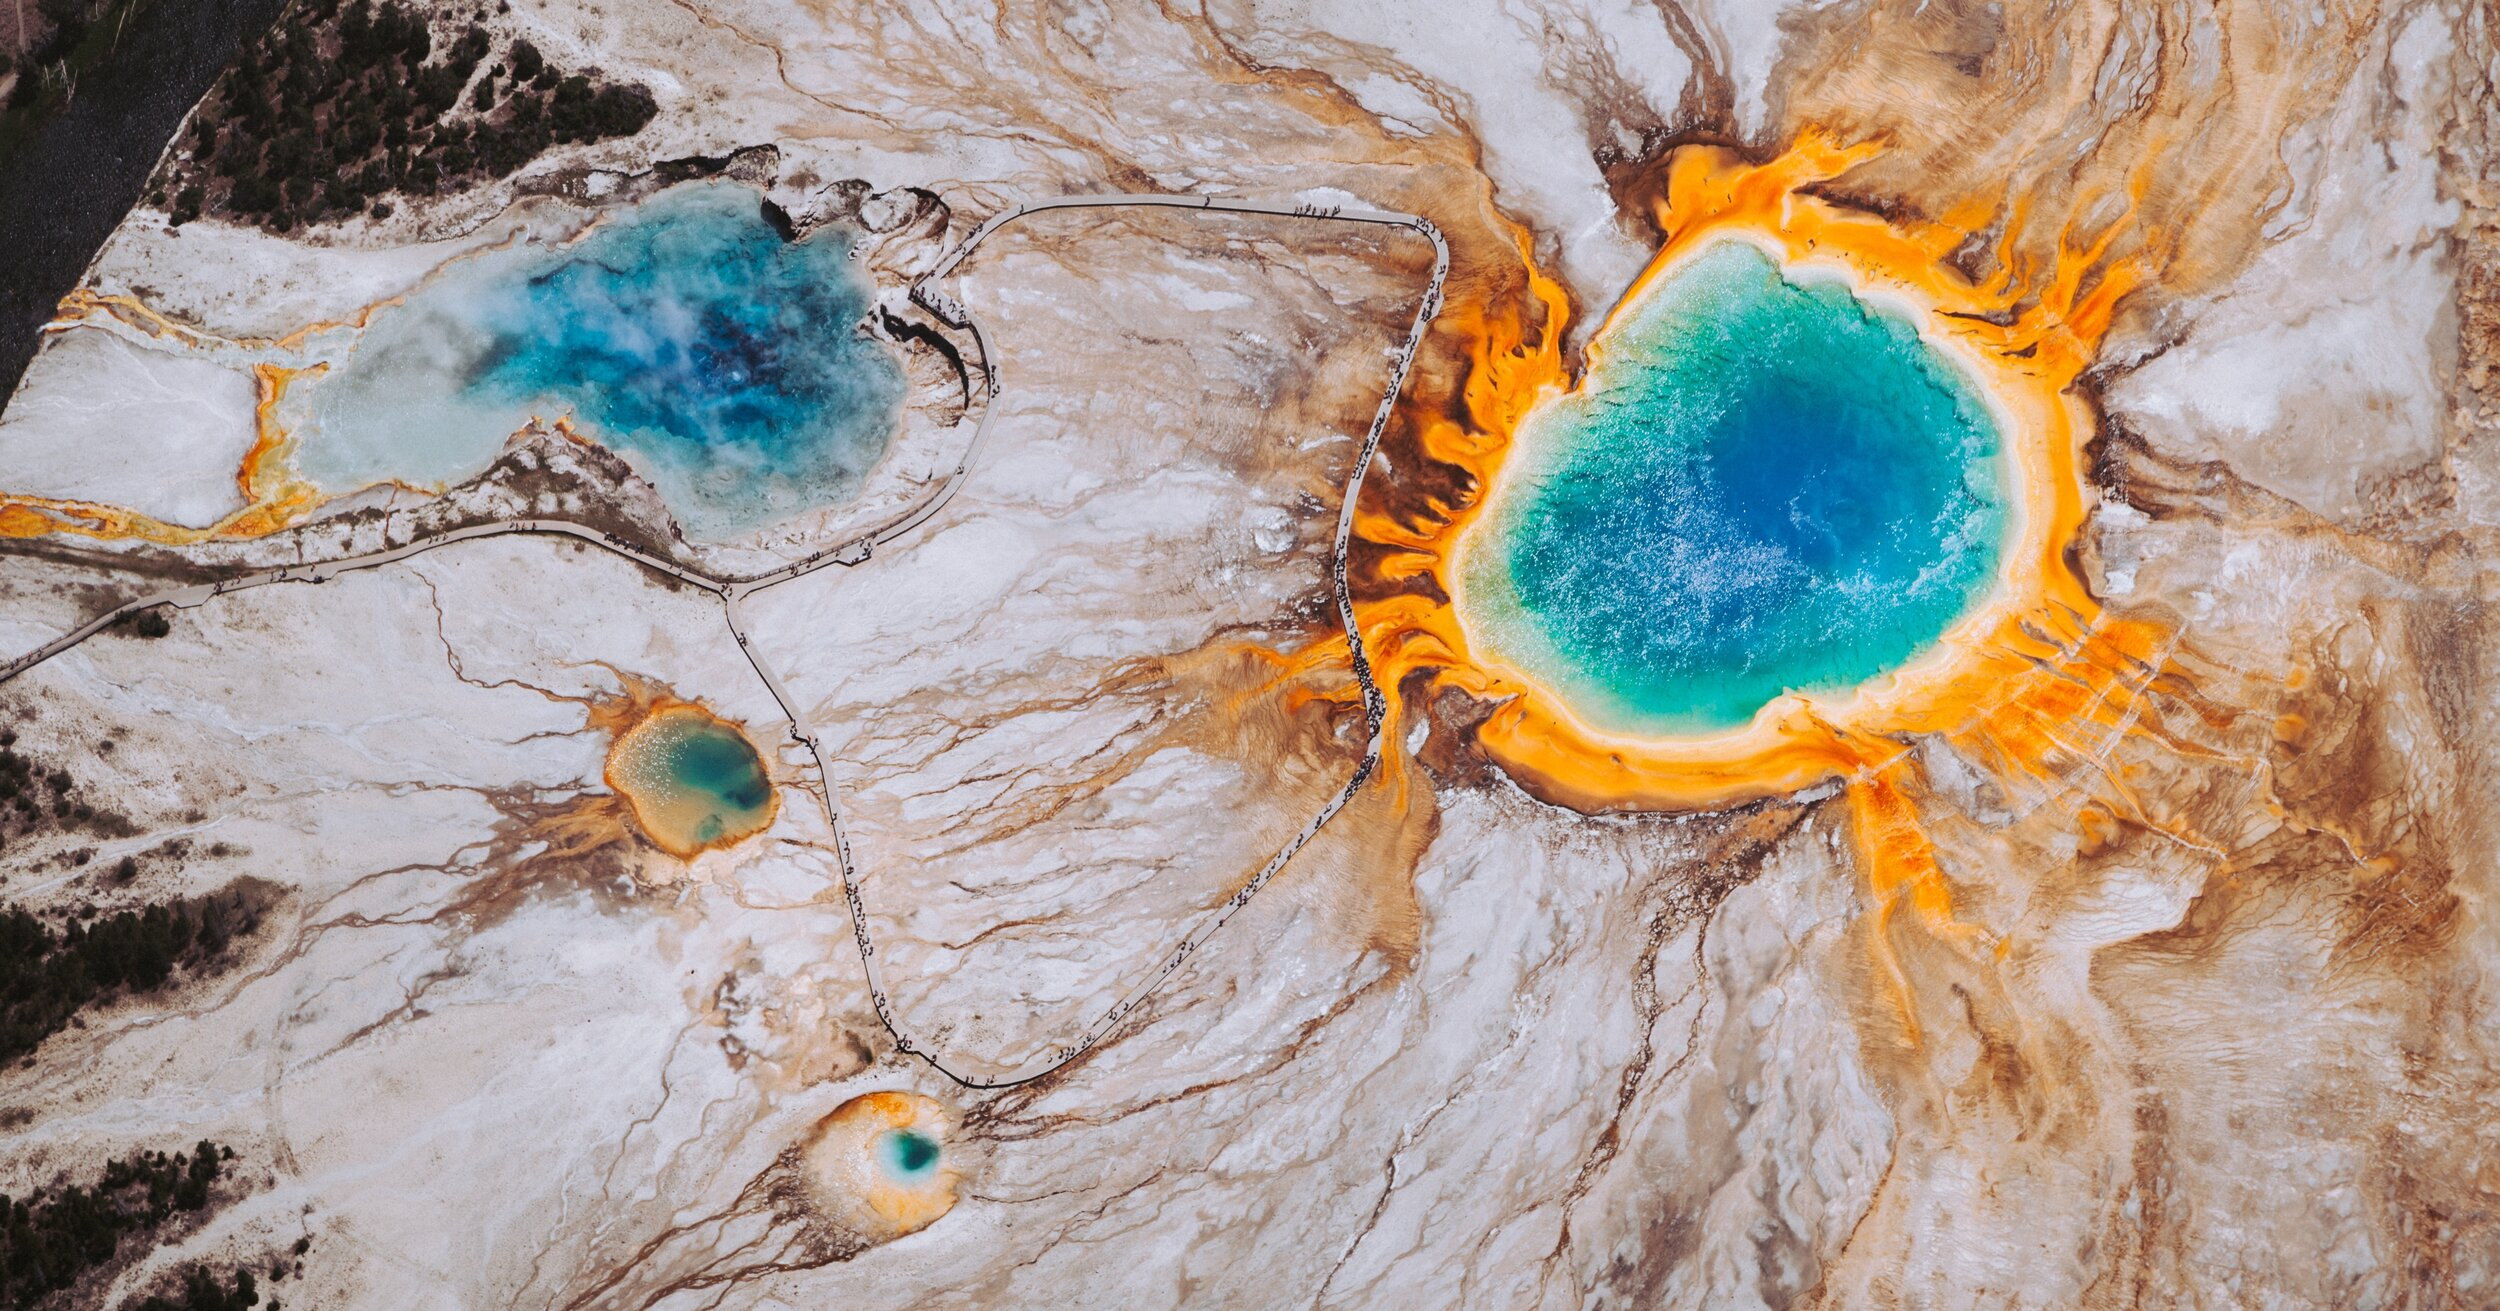 Grand Prismatic Spring, United States   . Photo by Chris Leipelt on Unsplash.